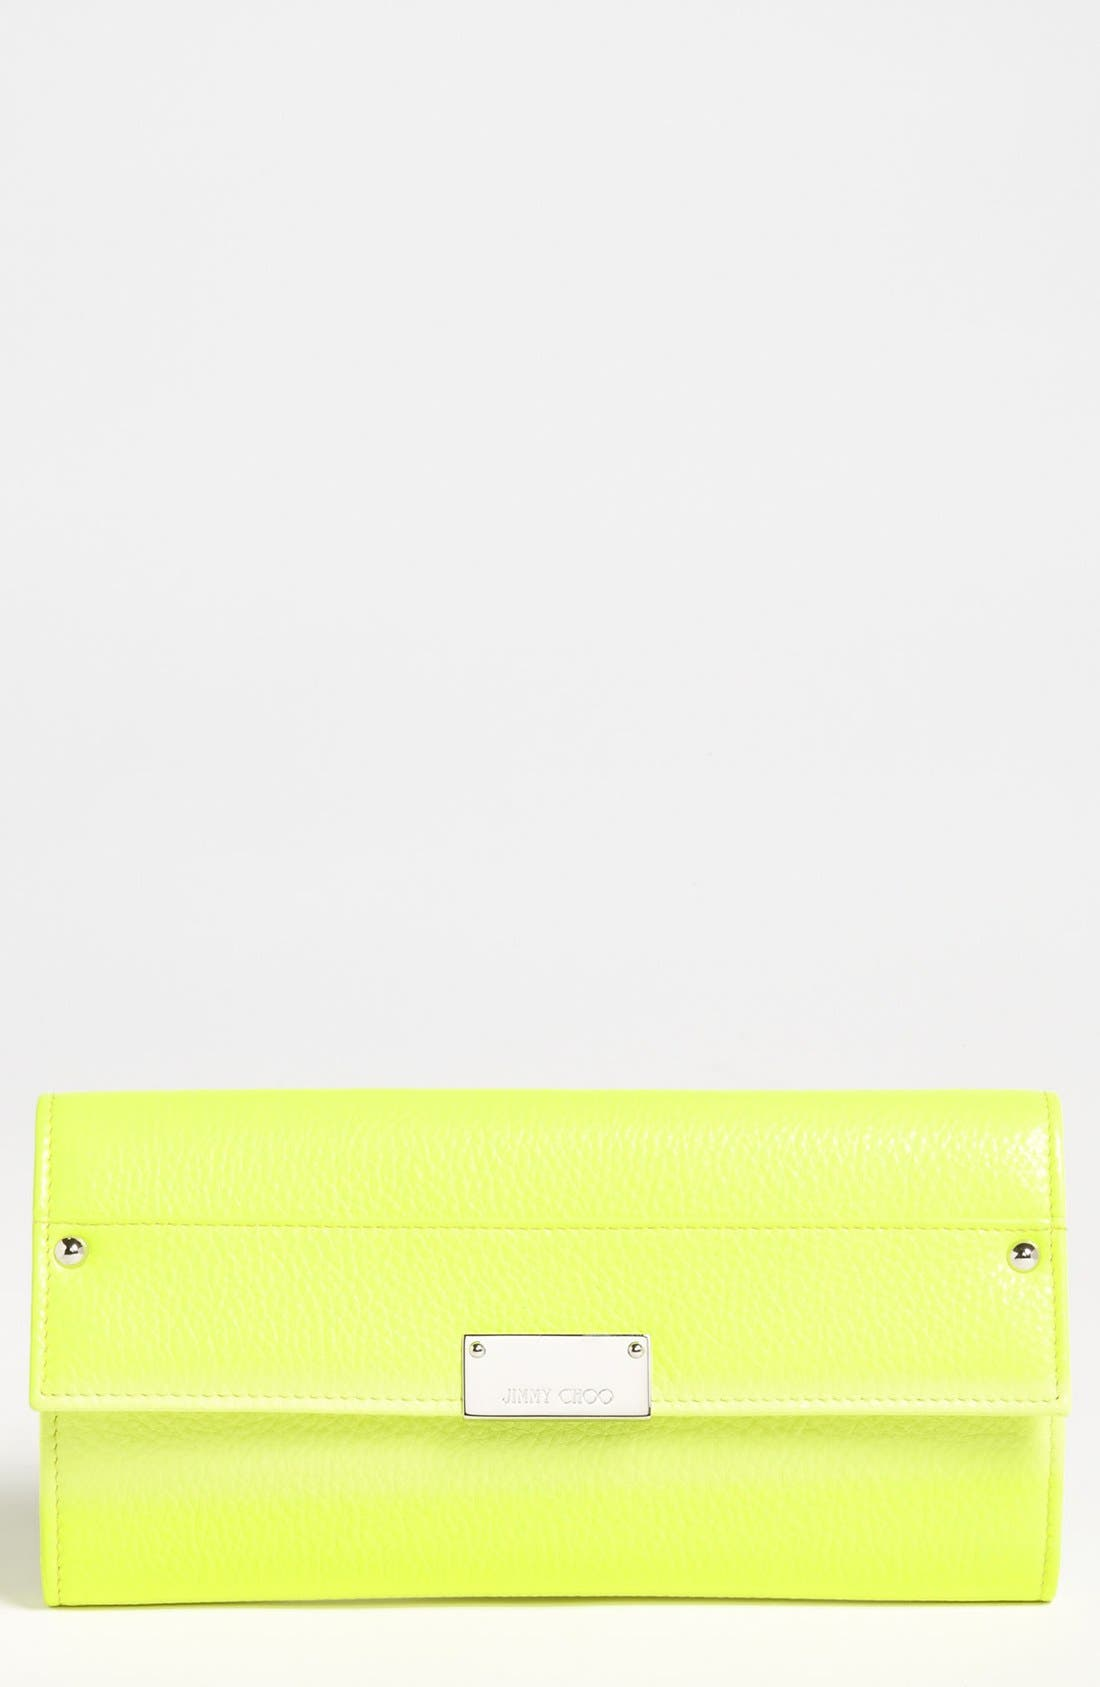 Alternate Image 1 Selected - Jimmy Choo 'Reese' Leather Clutch